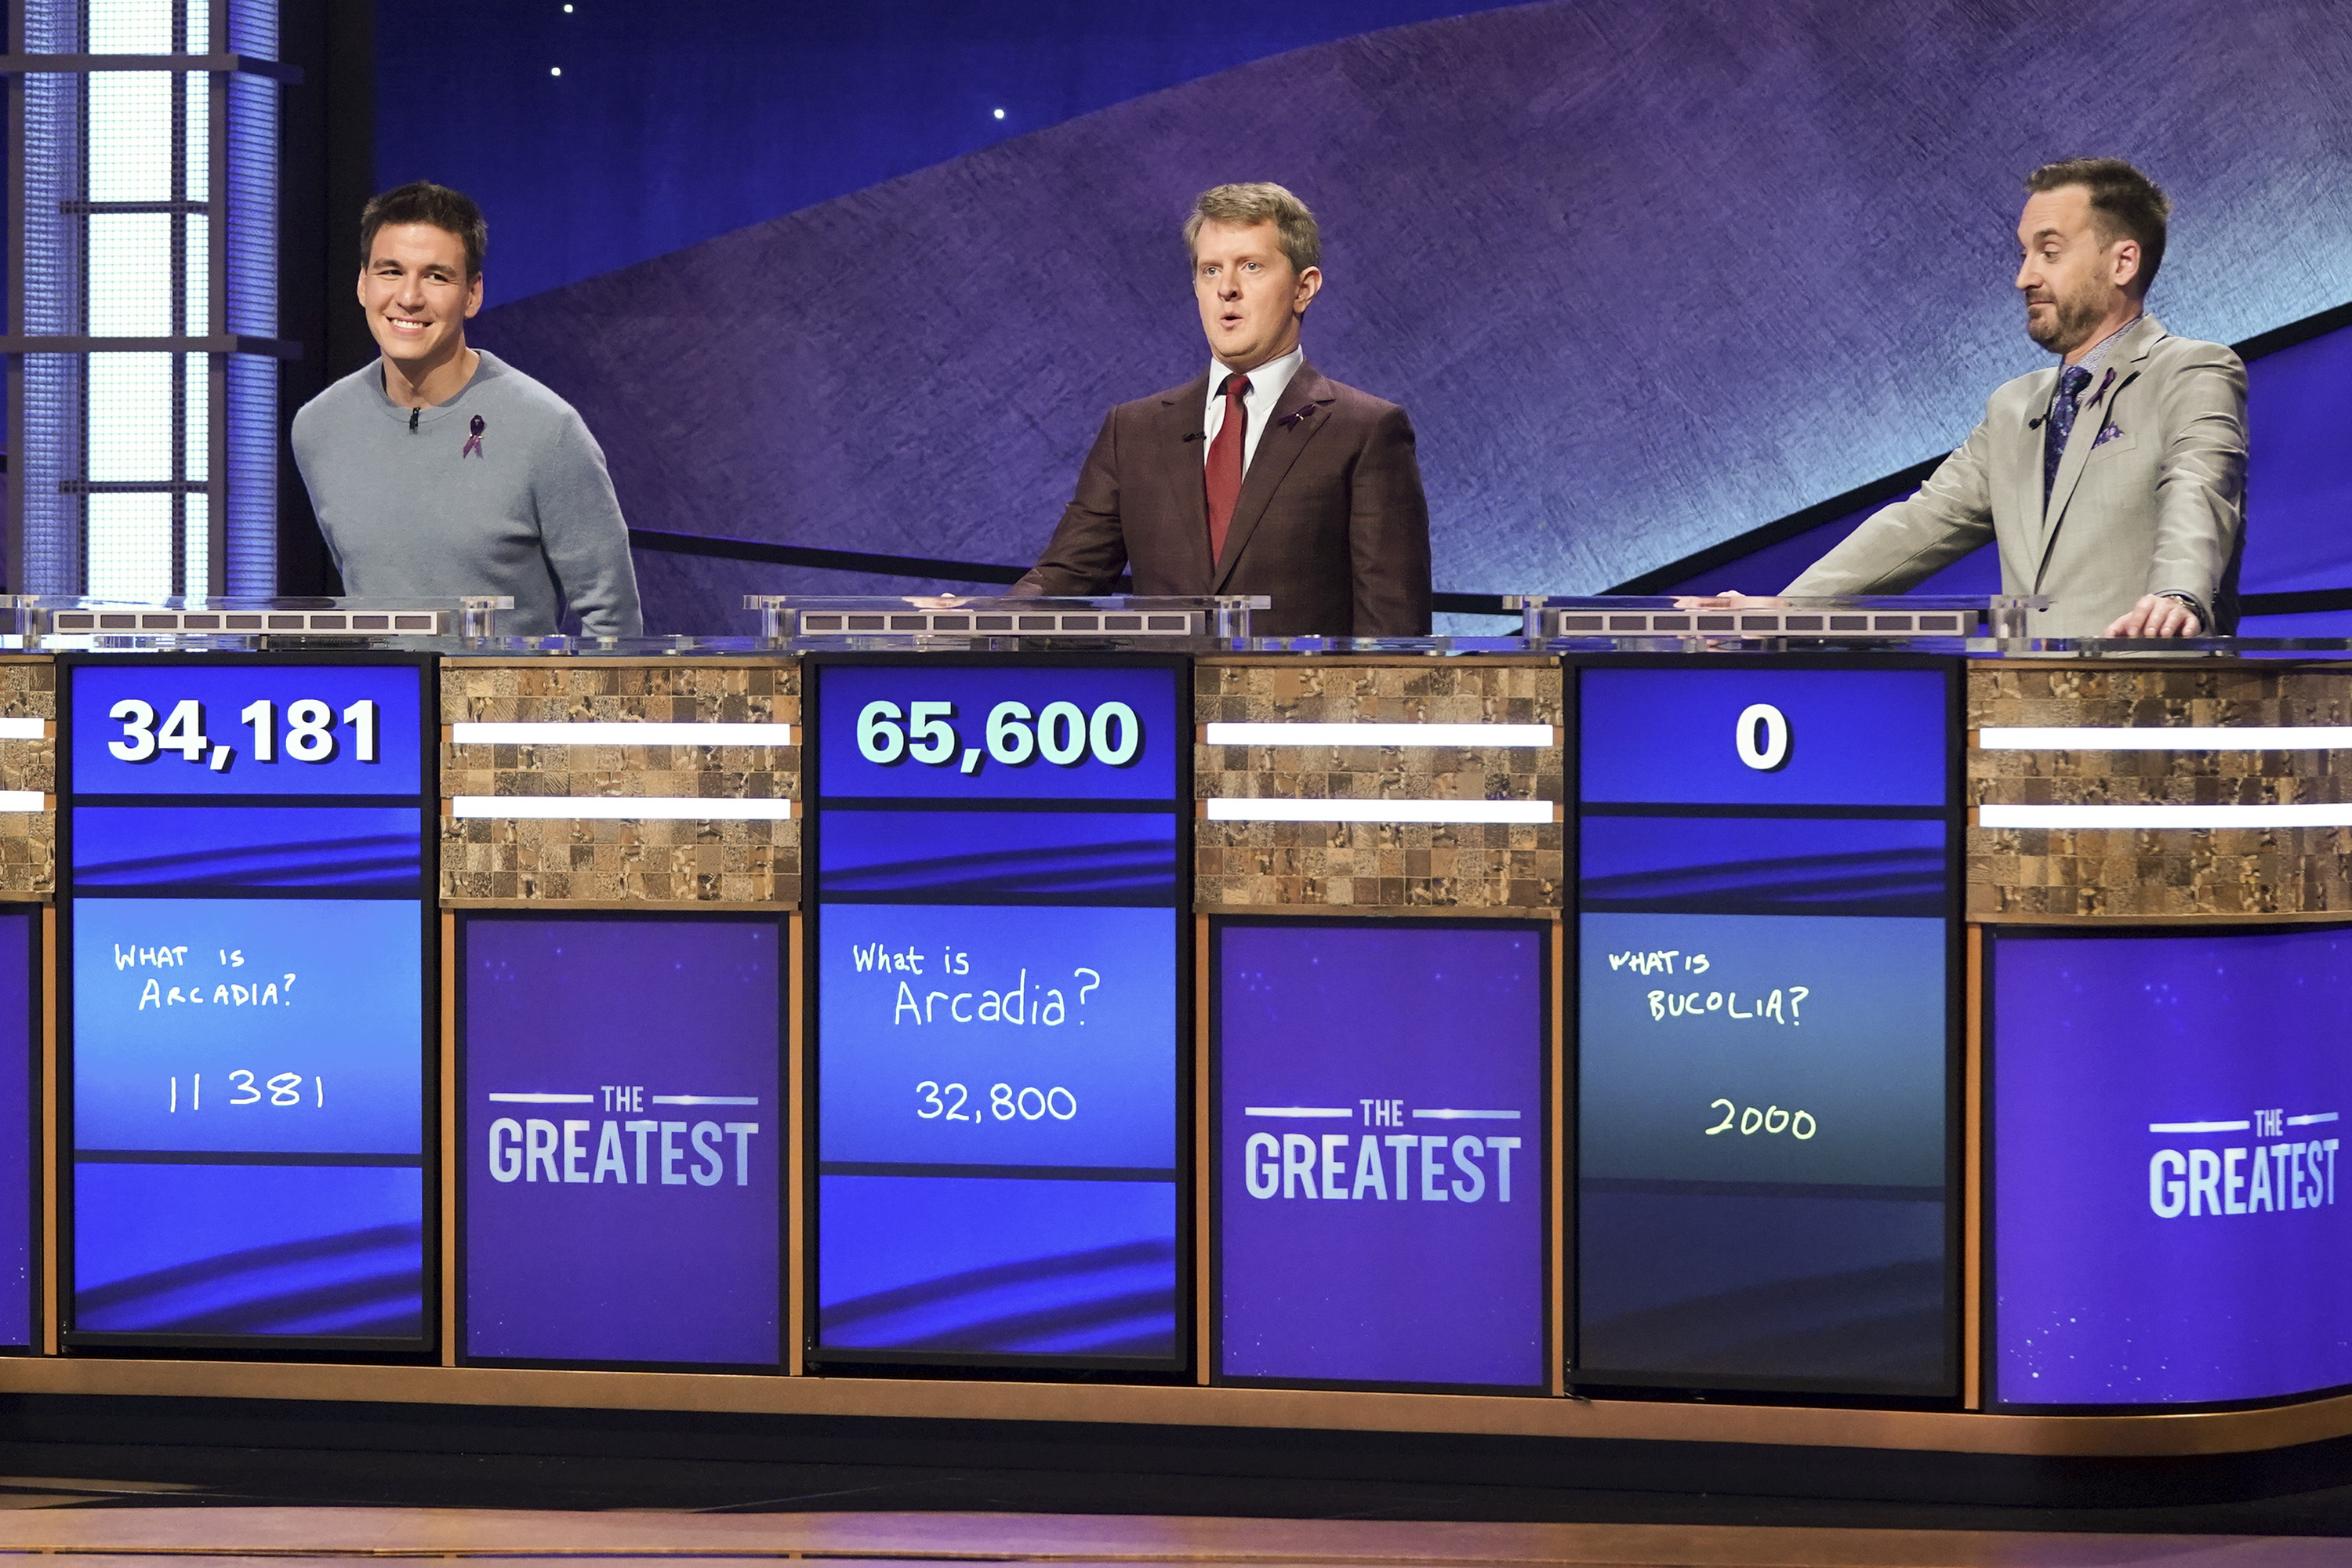 Ken Jennings became Jeopardy!'s greatest player of all time. Now it's time to move on.